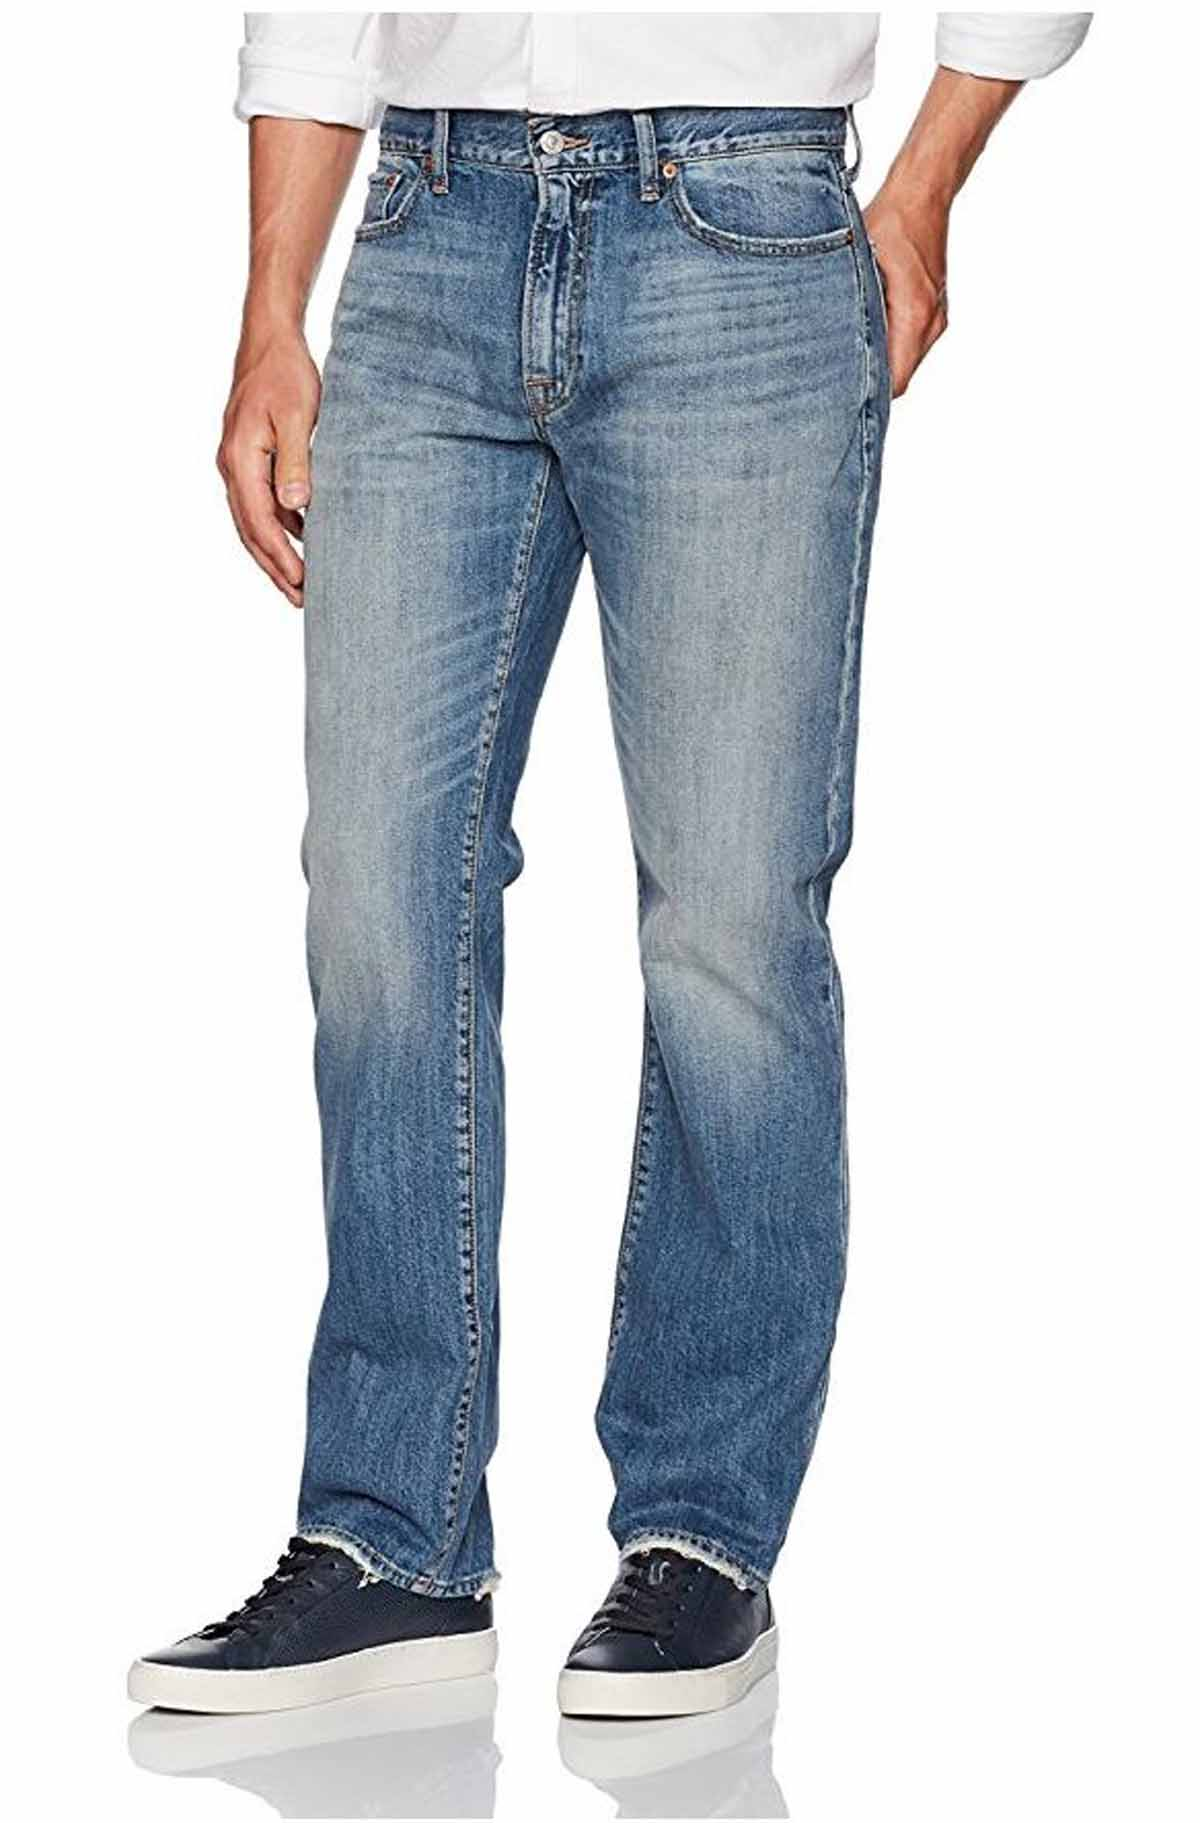 Lucky Brand Mens 363 Vintage Straight Fit Jeans